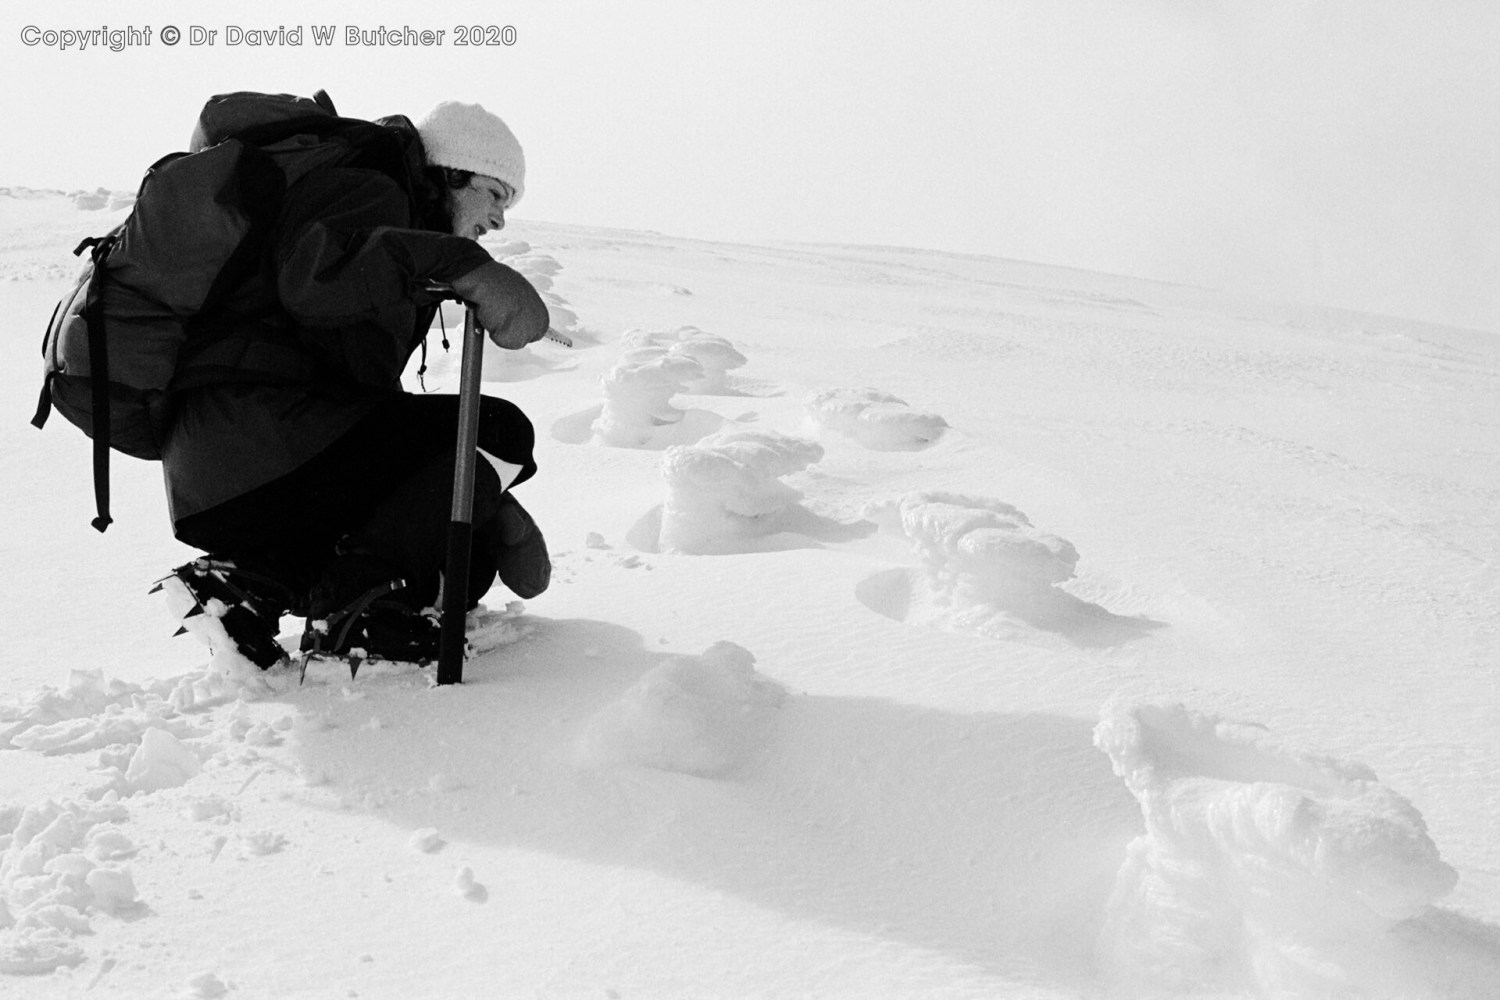 Stob a' Choire Mheadhoin Ice Footsteps, Fort William, Scotland